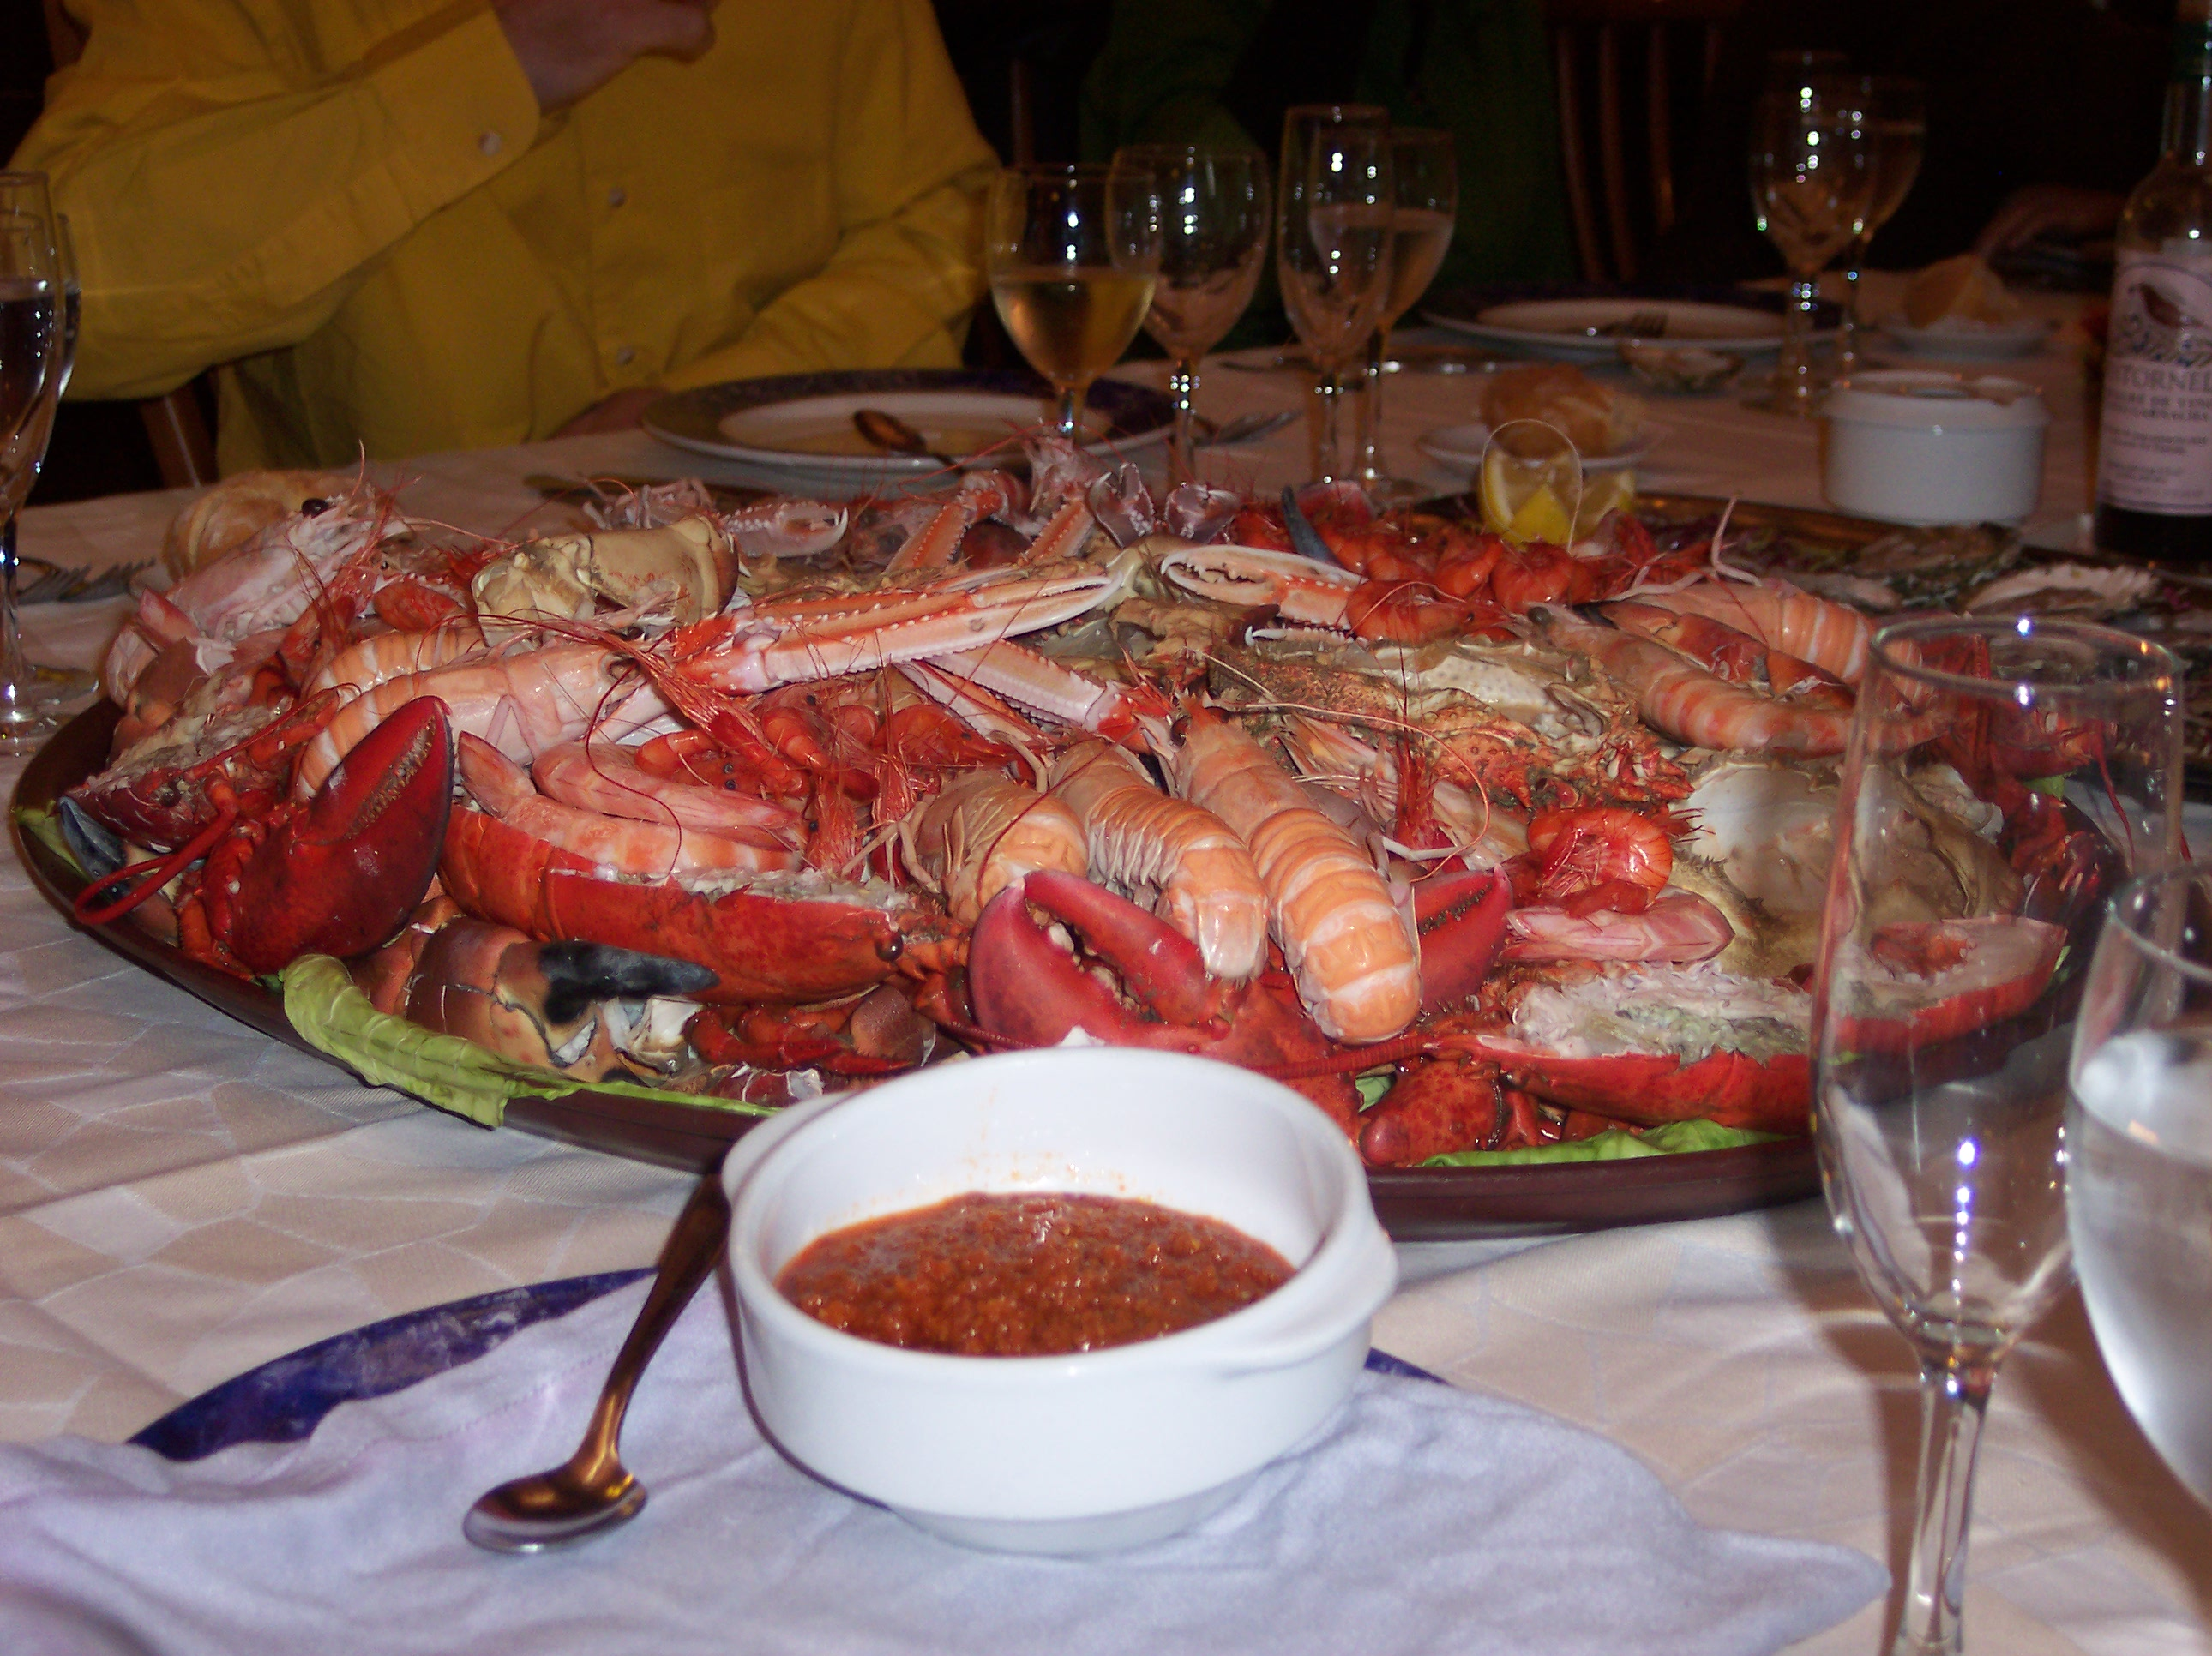 http://upload.wikimedia.org/wikipedia/commons/7/7f/Mariscada.jpg